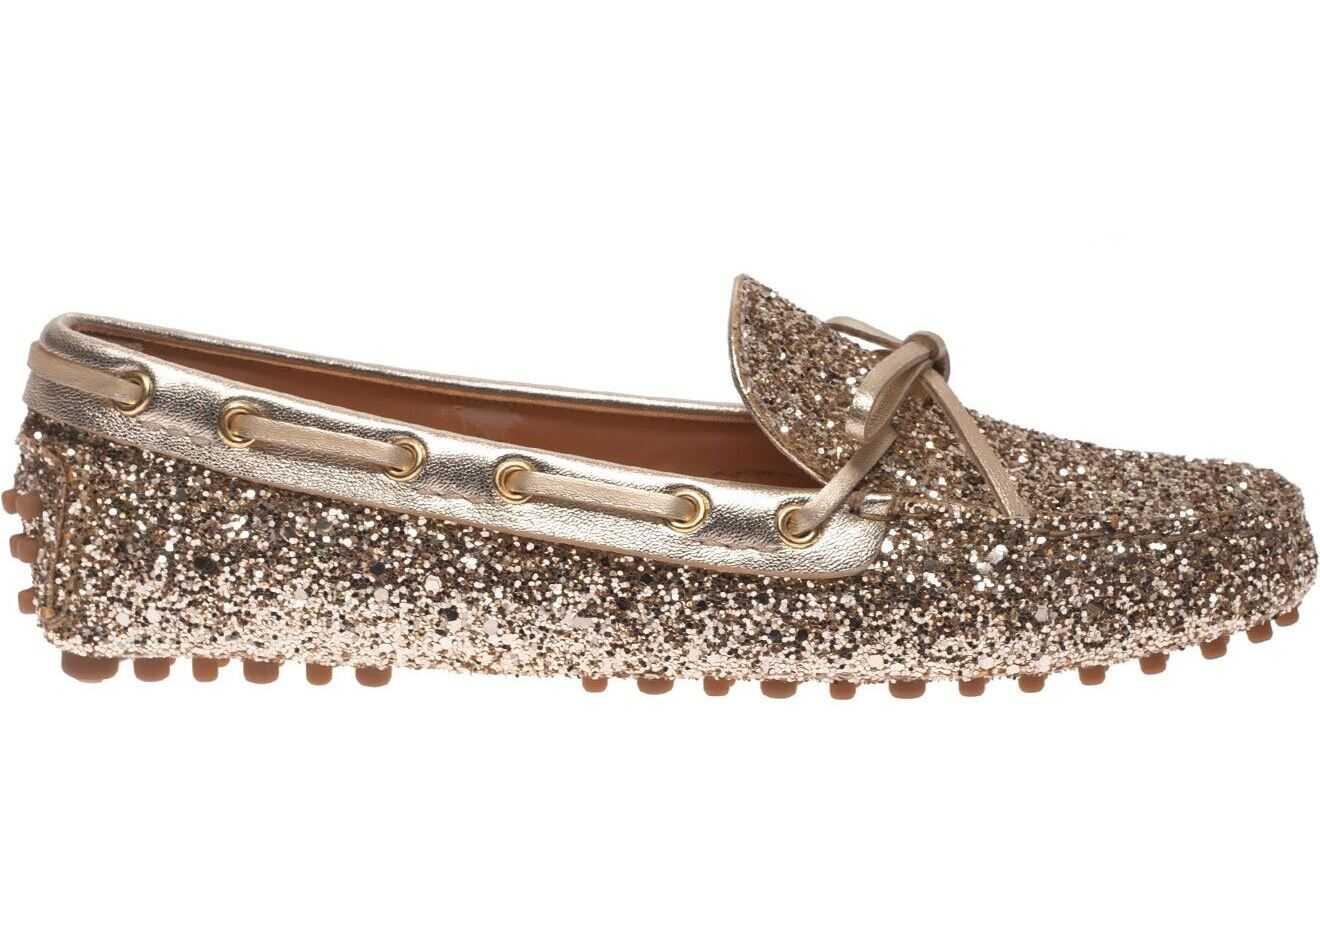 Car Shoe Glitter Loafers In Gold Color Gold